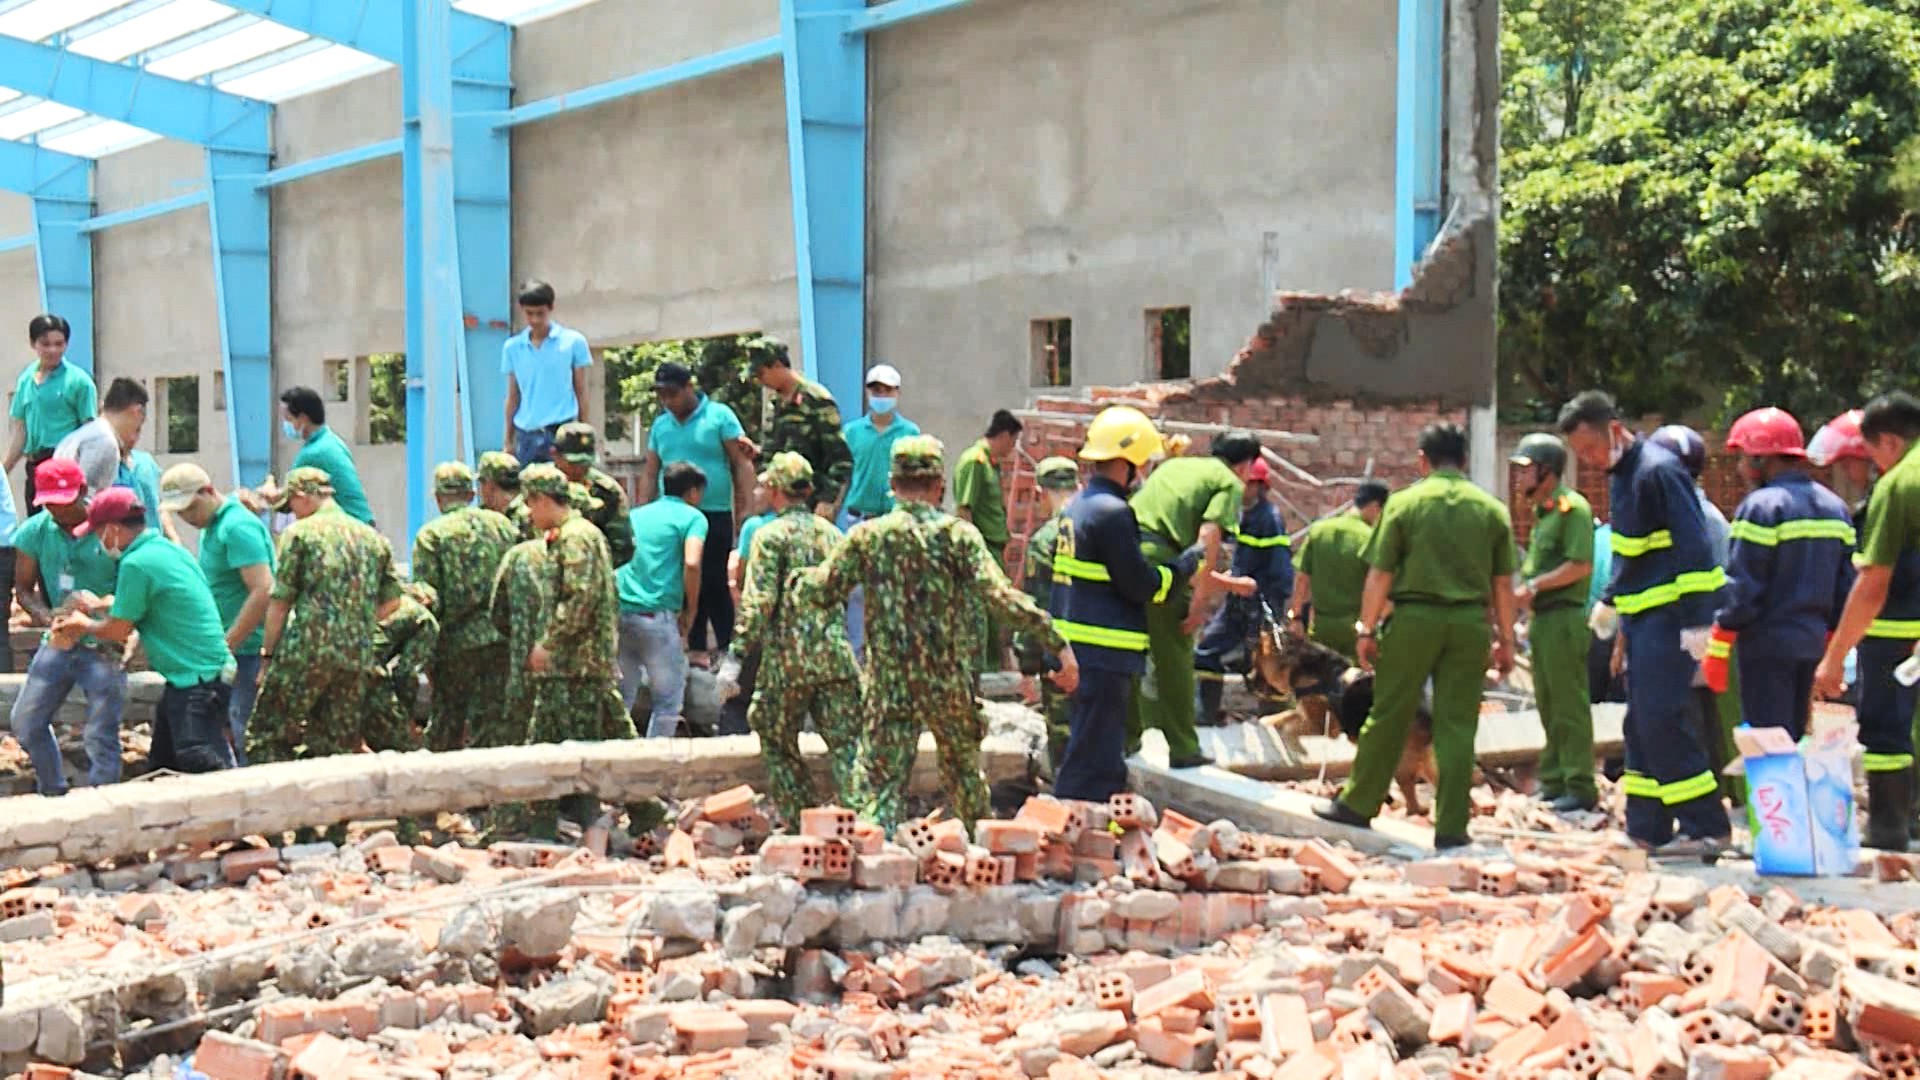 Defendants given suspended sentences over fatal construction wall collapse in Vietnam